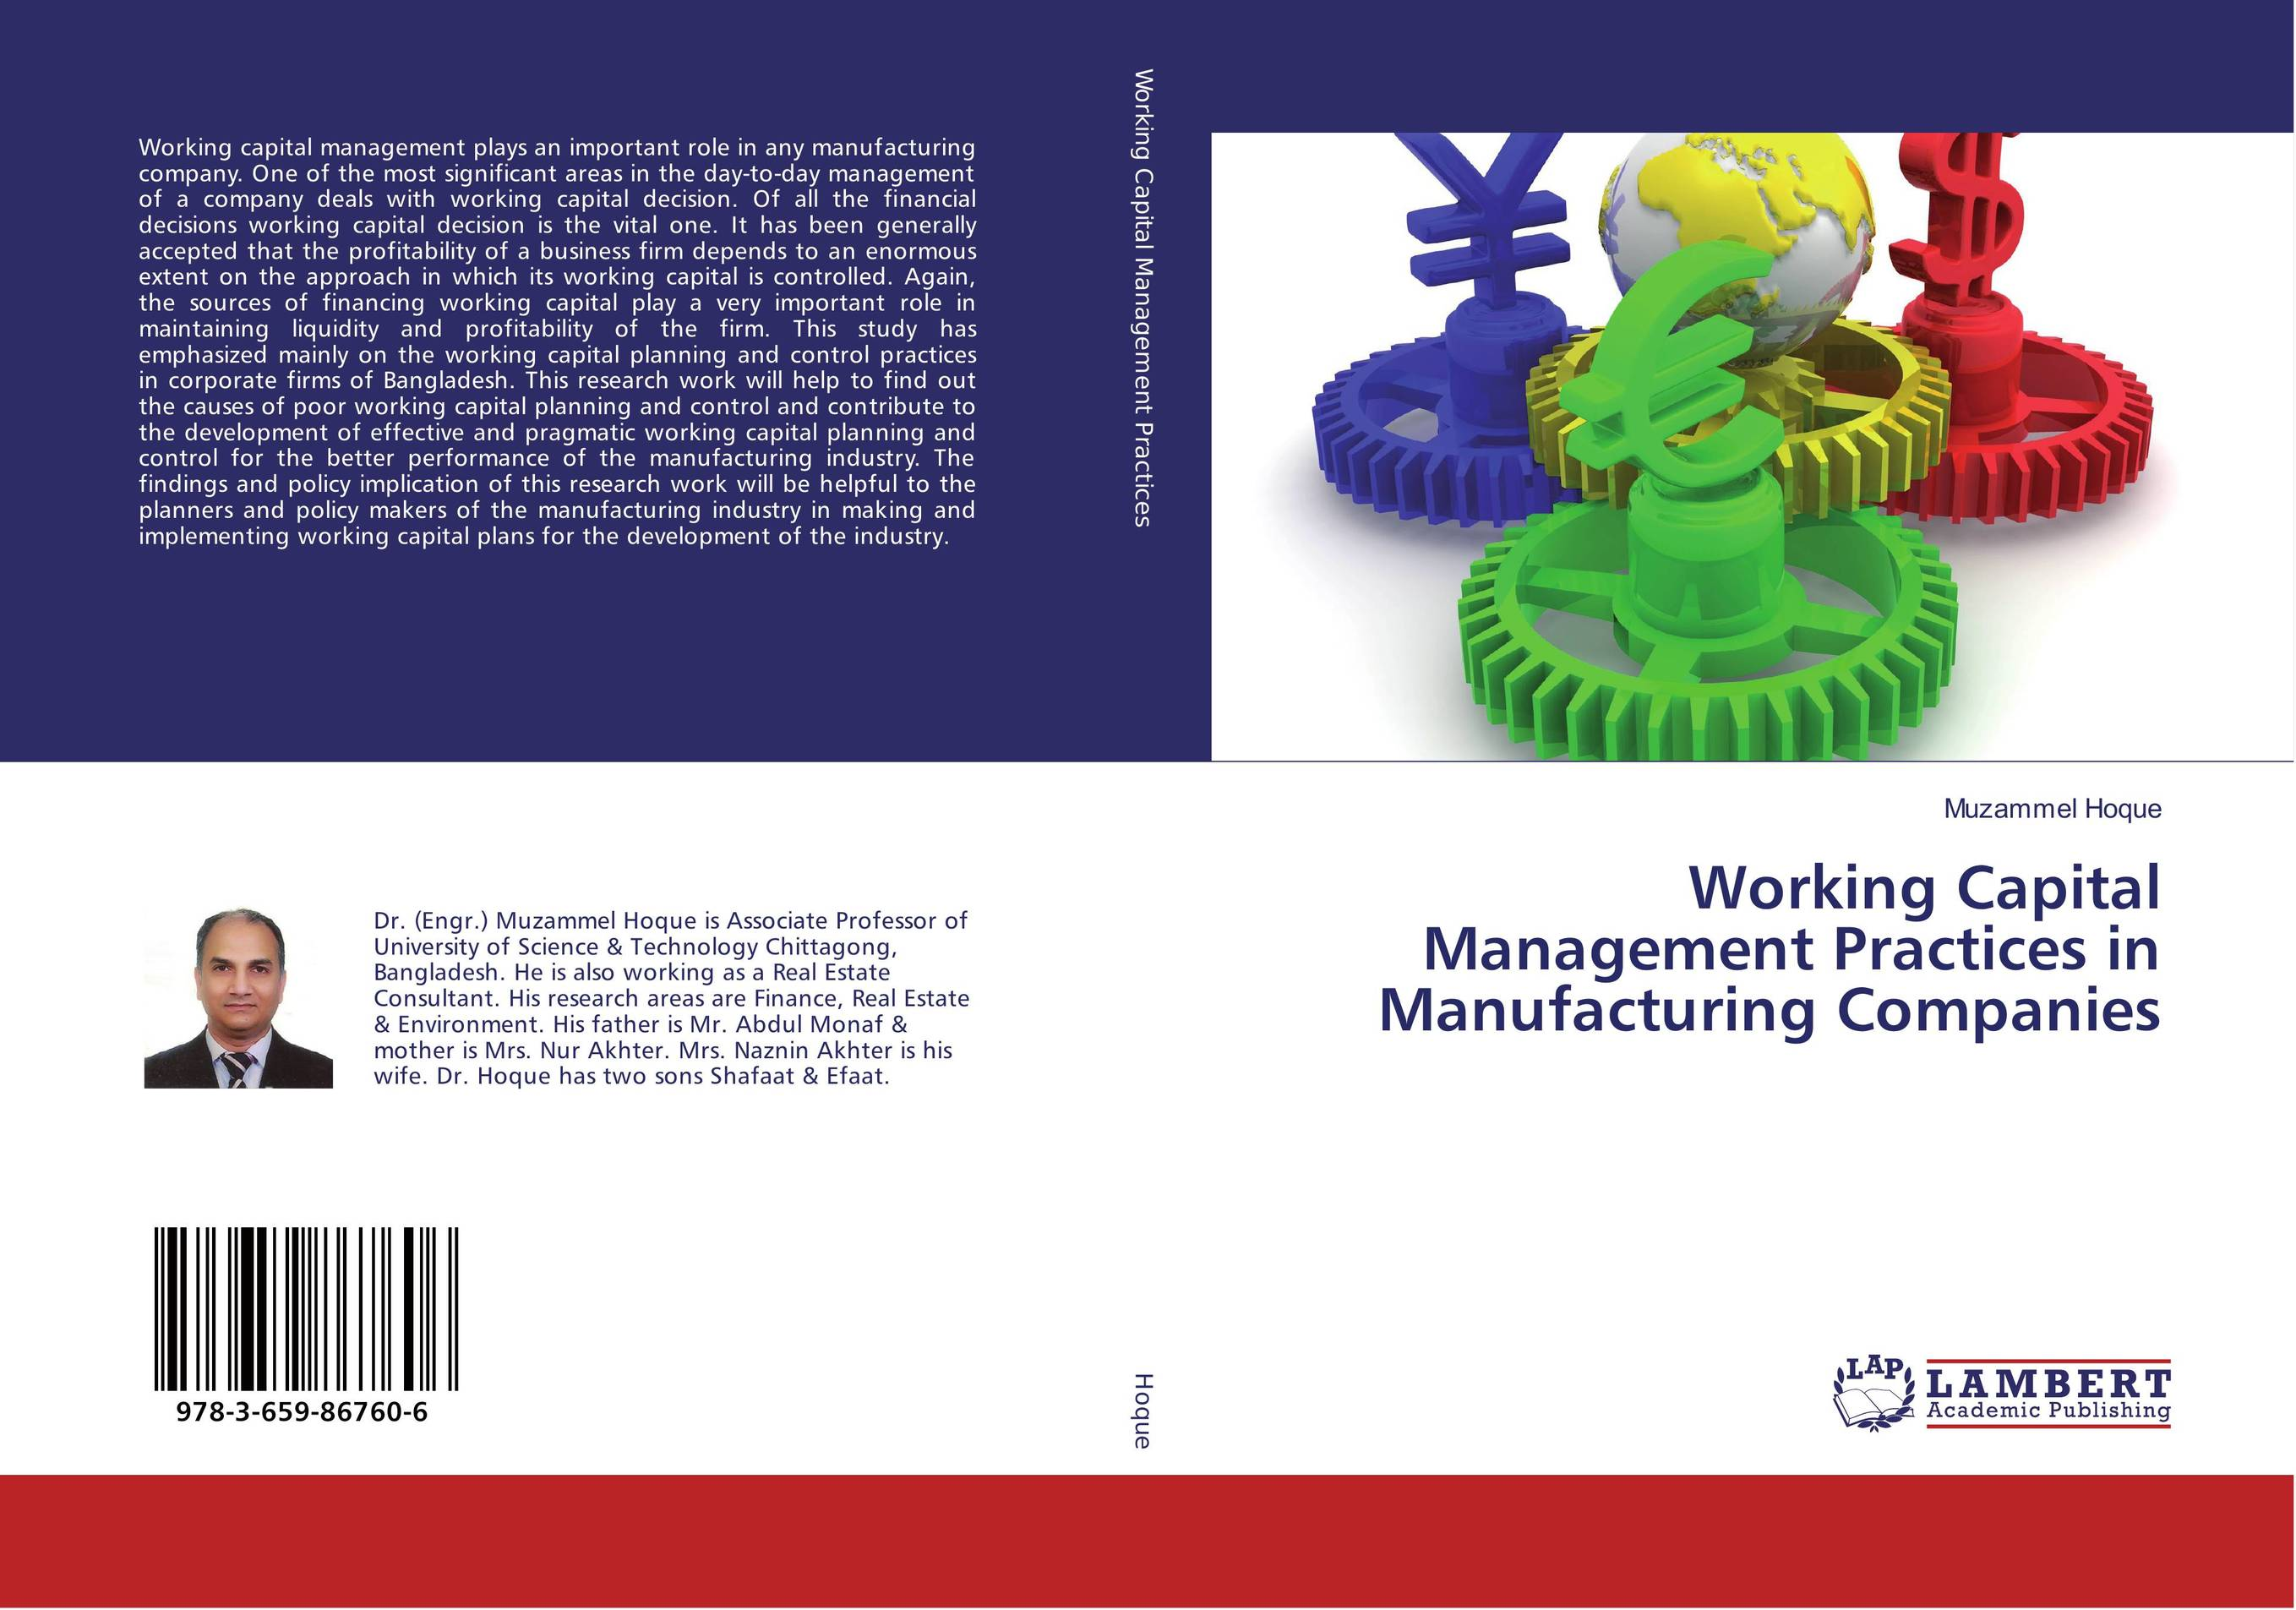 Working Capital Management Practices in Manufacturing Companies the working class foodies cookbook